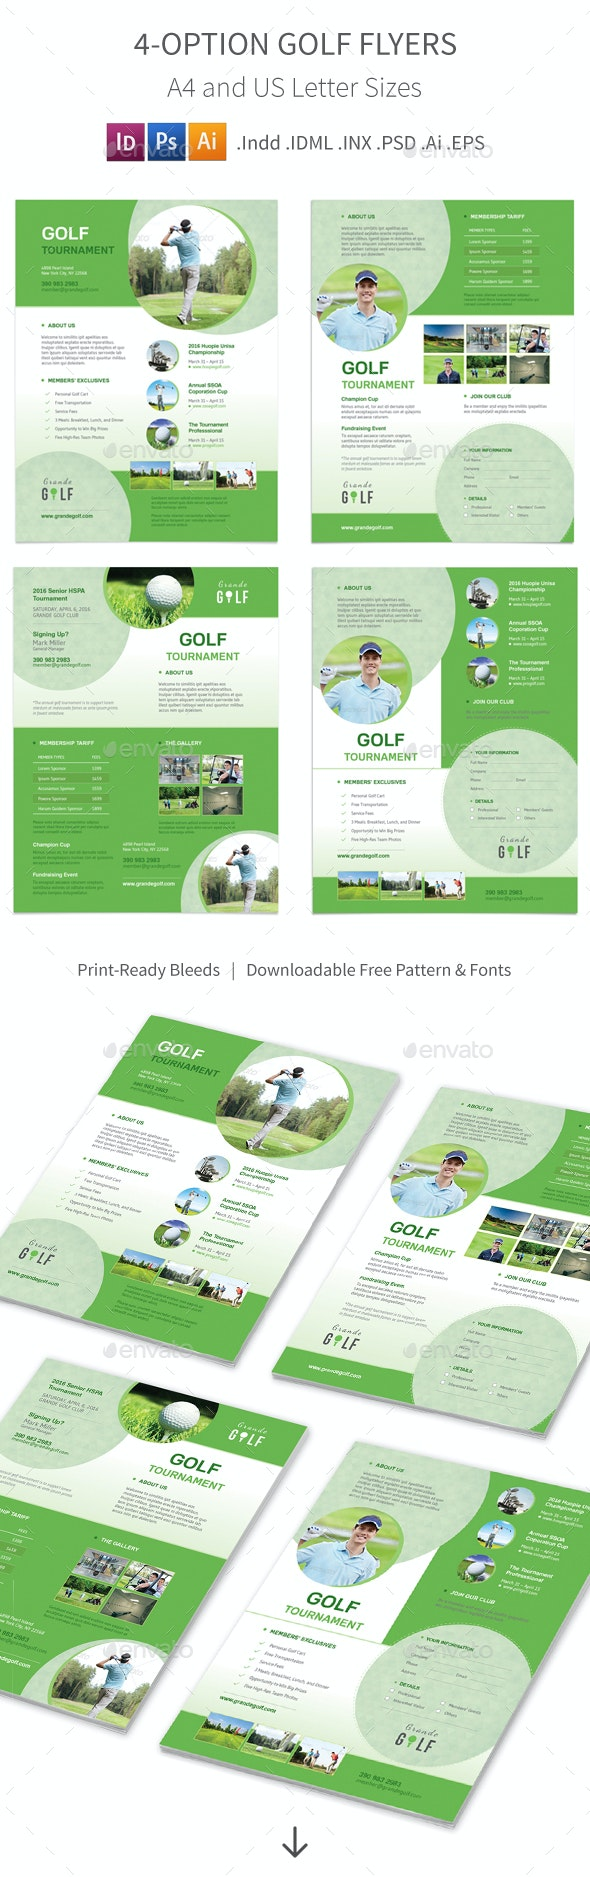 Golf Tournament Flyers 3 – 4 Options - Corporate Flyers